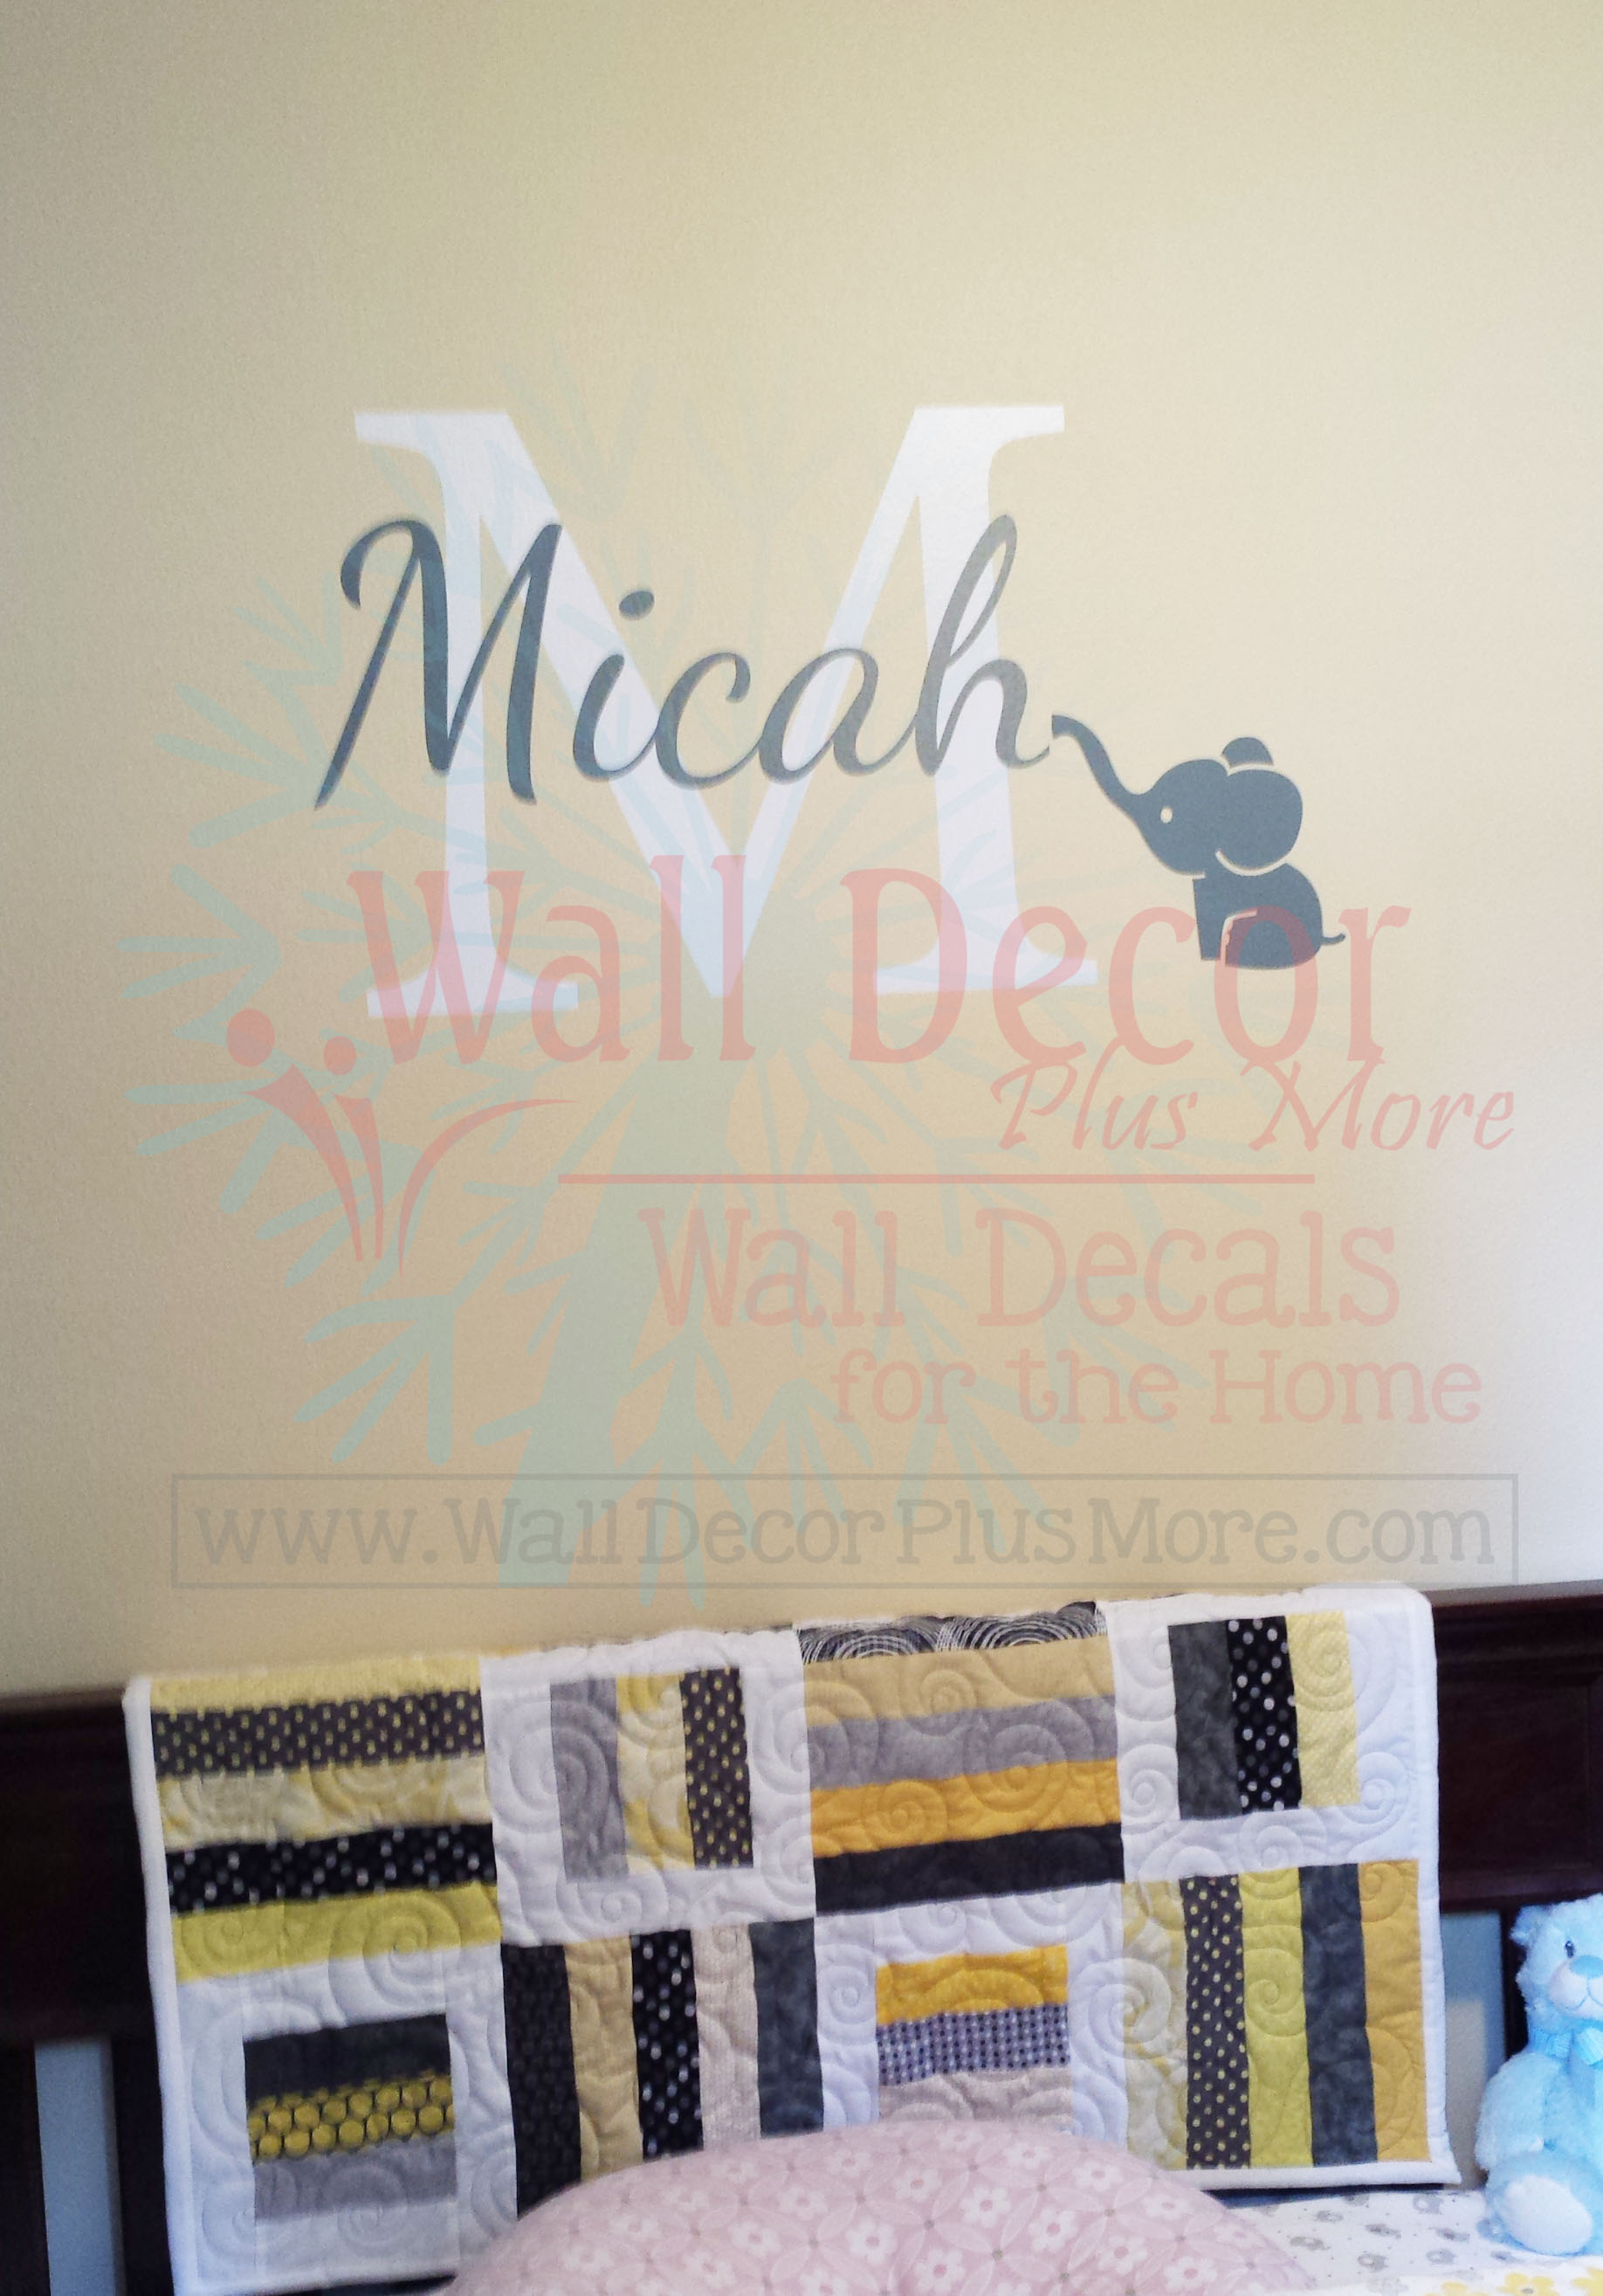 micah-wall-decal-stickers-name-letter-with-elephant-white-letter-storm-gray-name.jpg